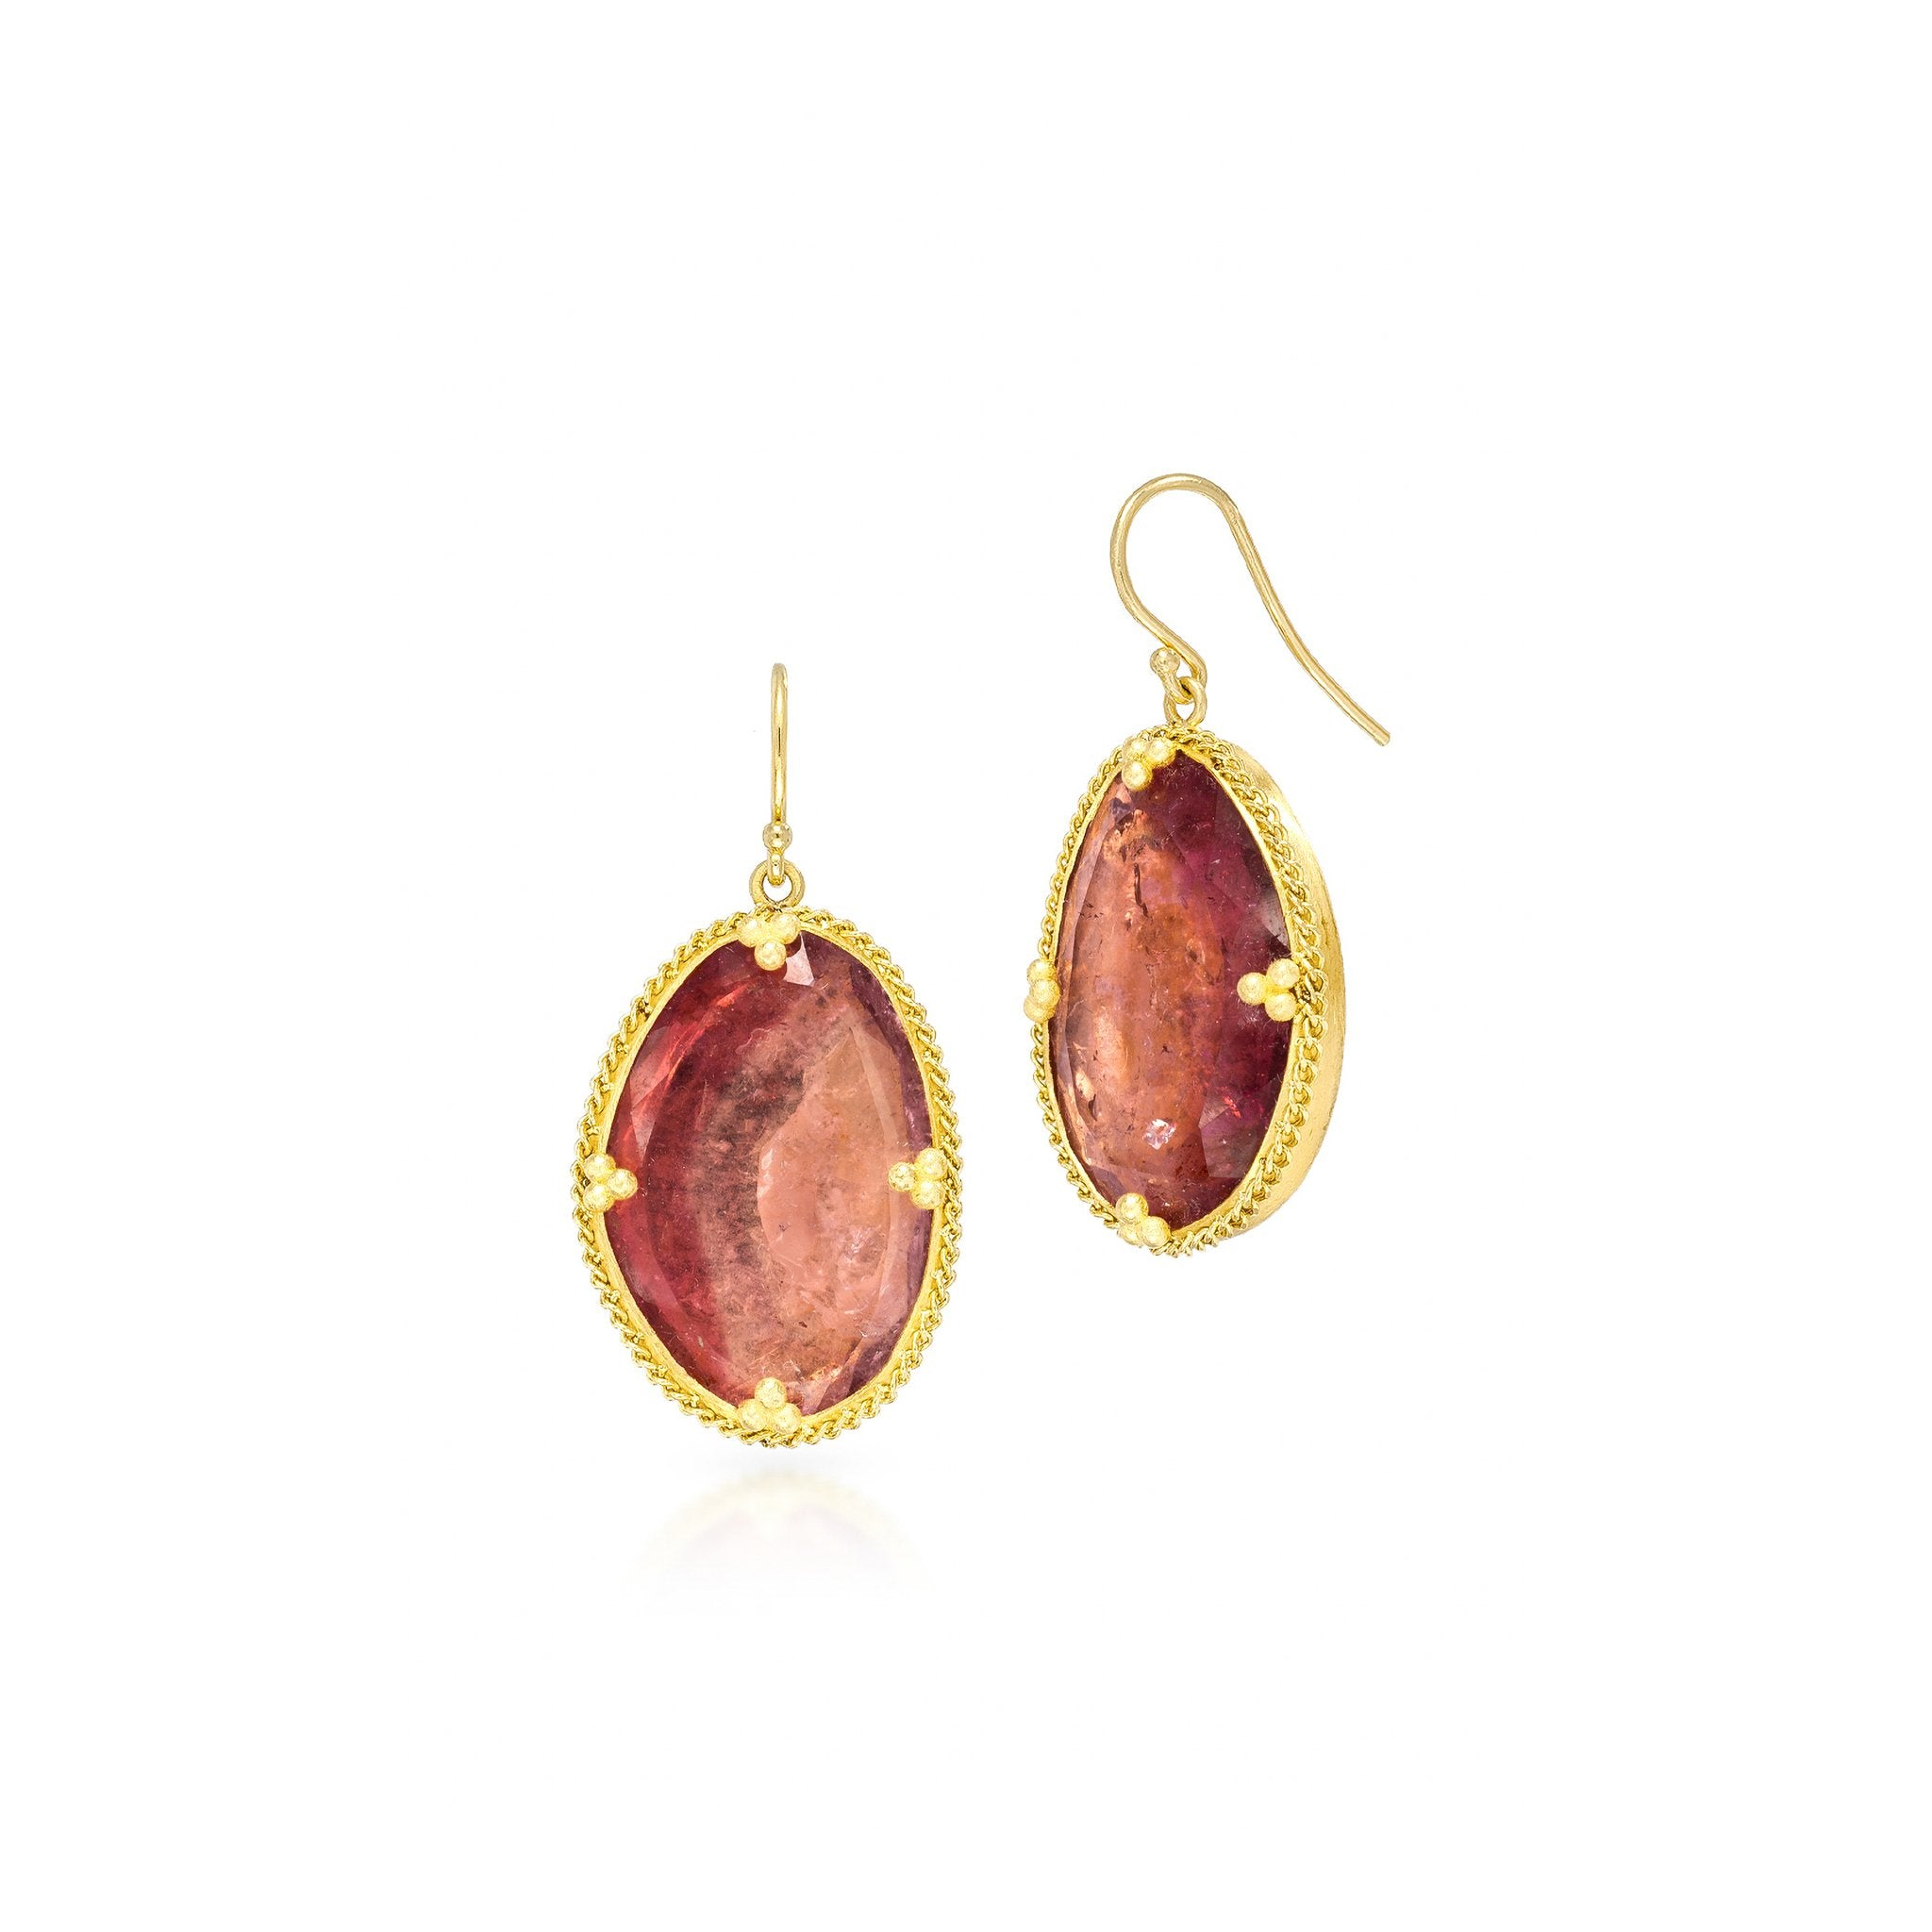 Amali-Pink Tourmaline Earrings